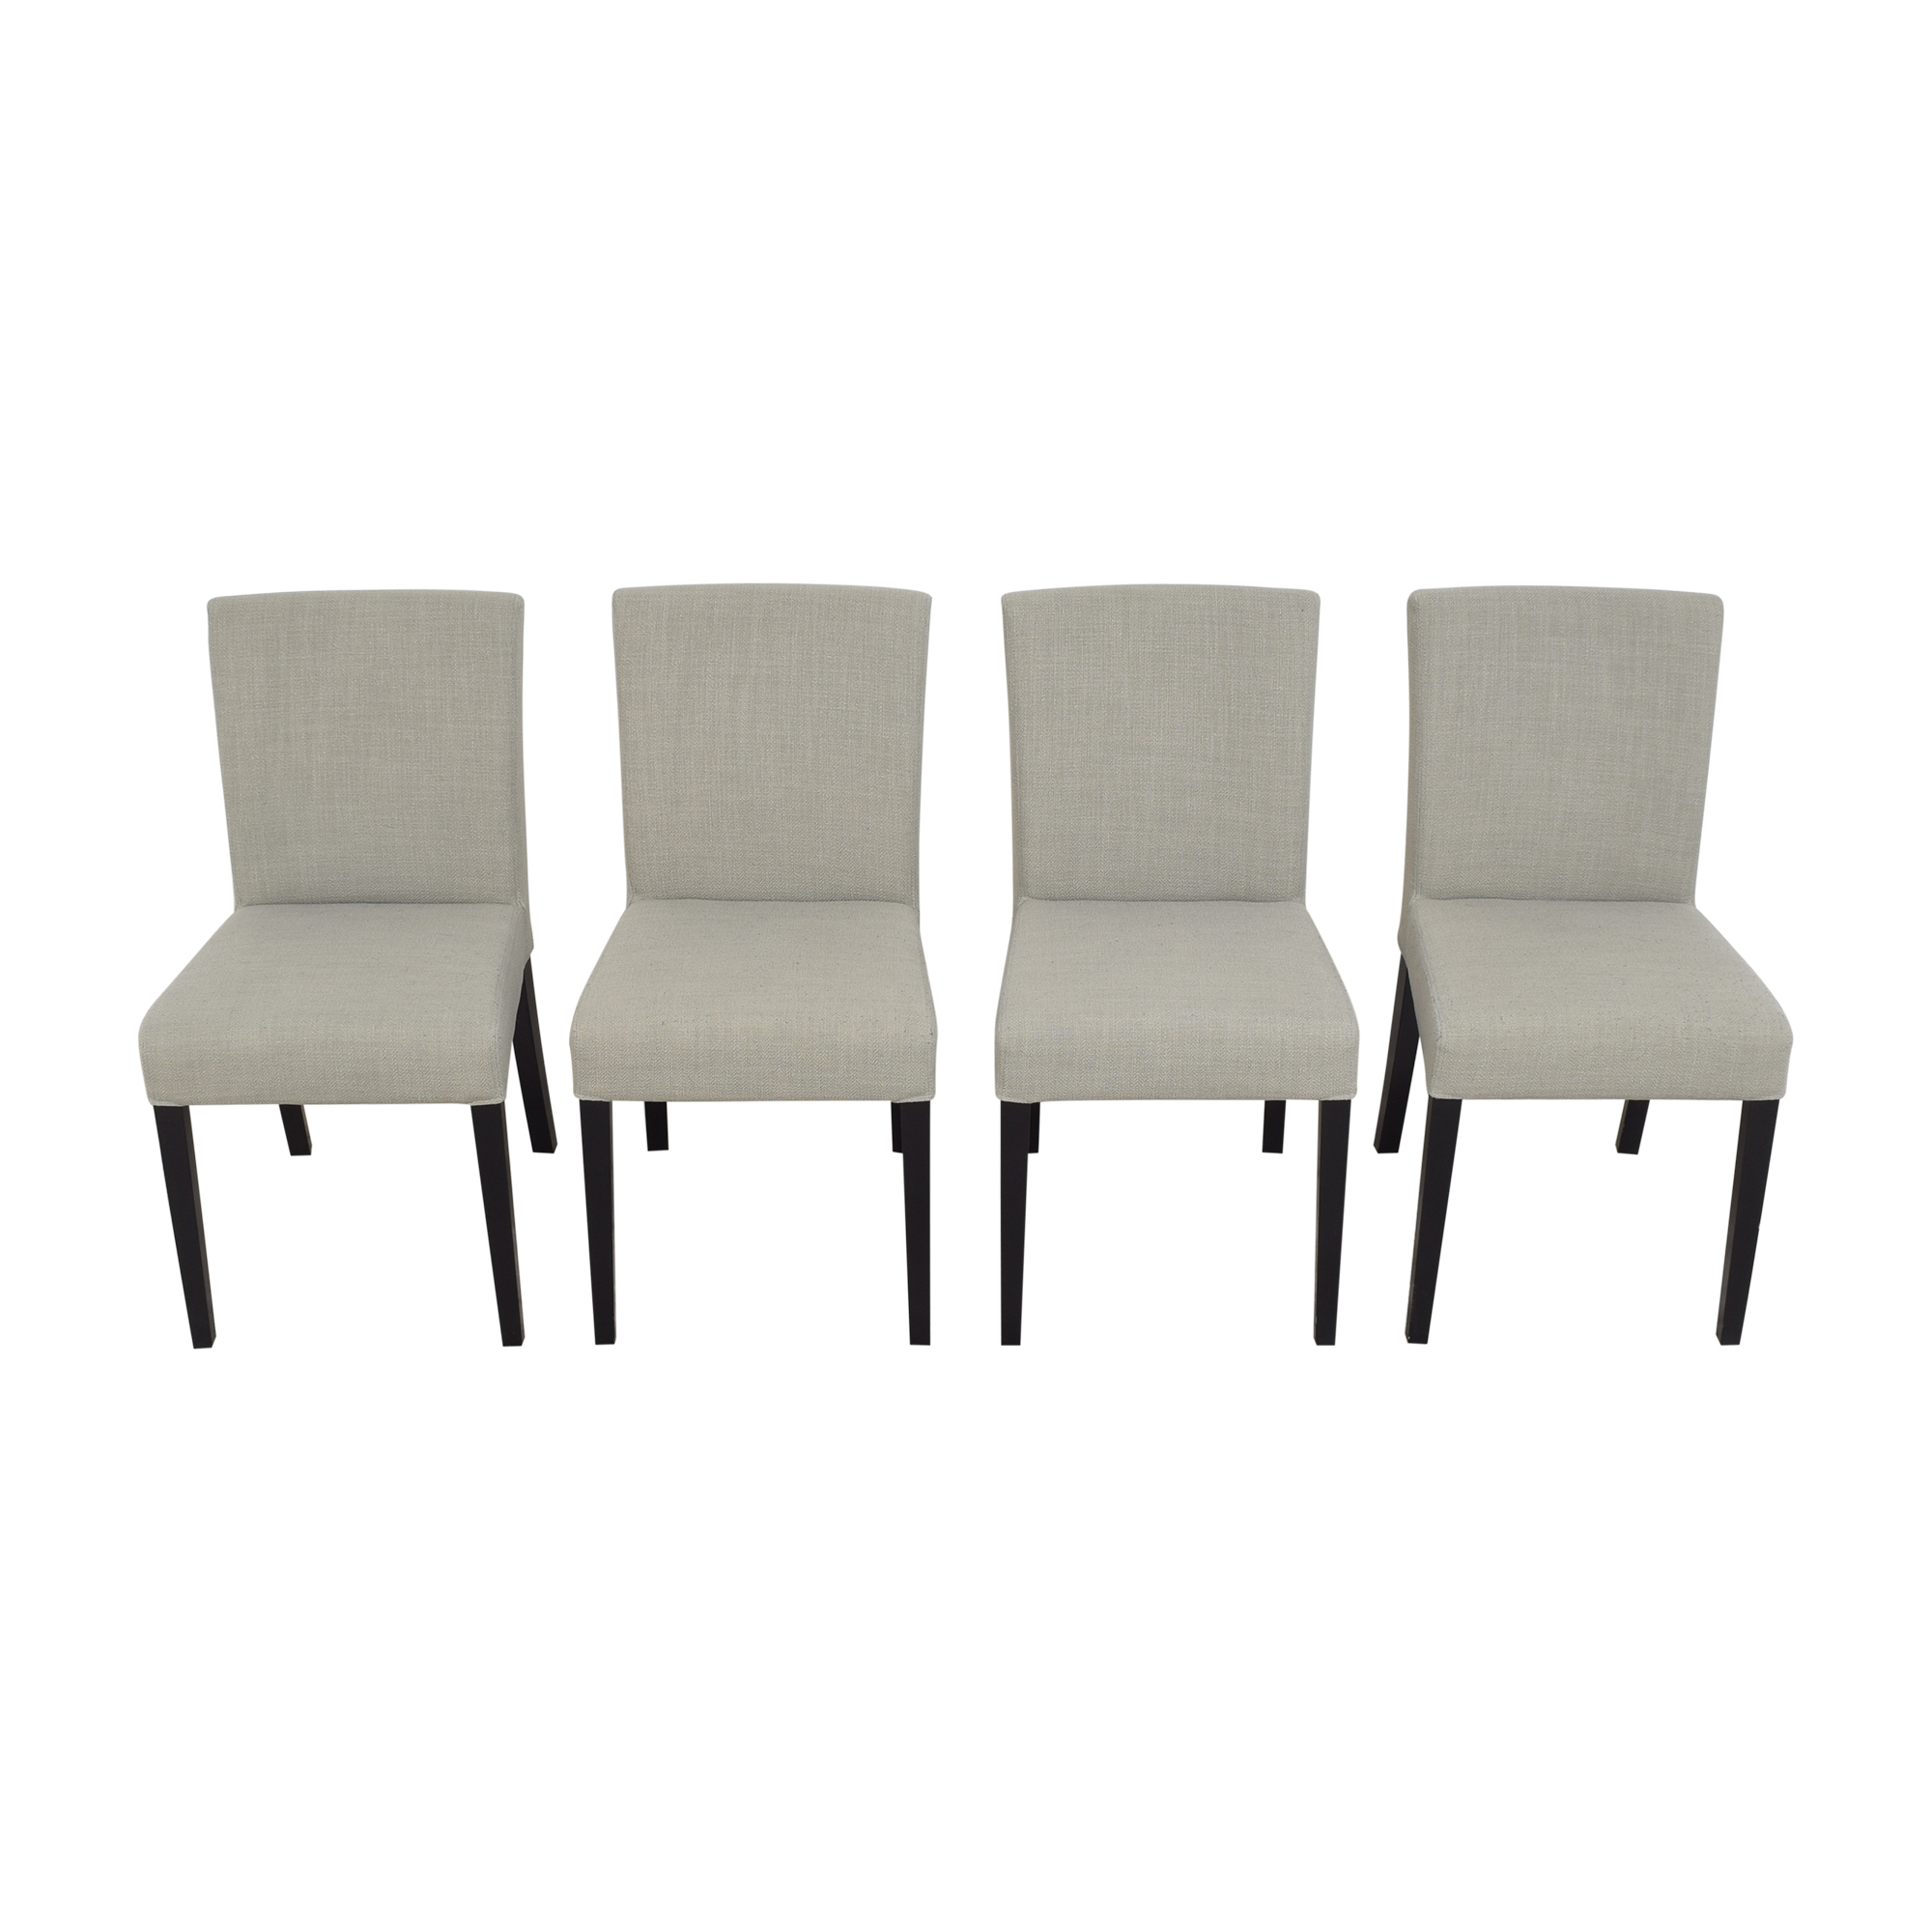 buy Crate & Barrel Miles Upholstered Dining Chairs Crate & Barrel Chairs